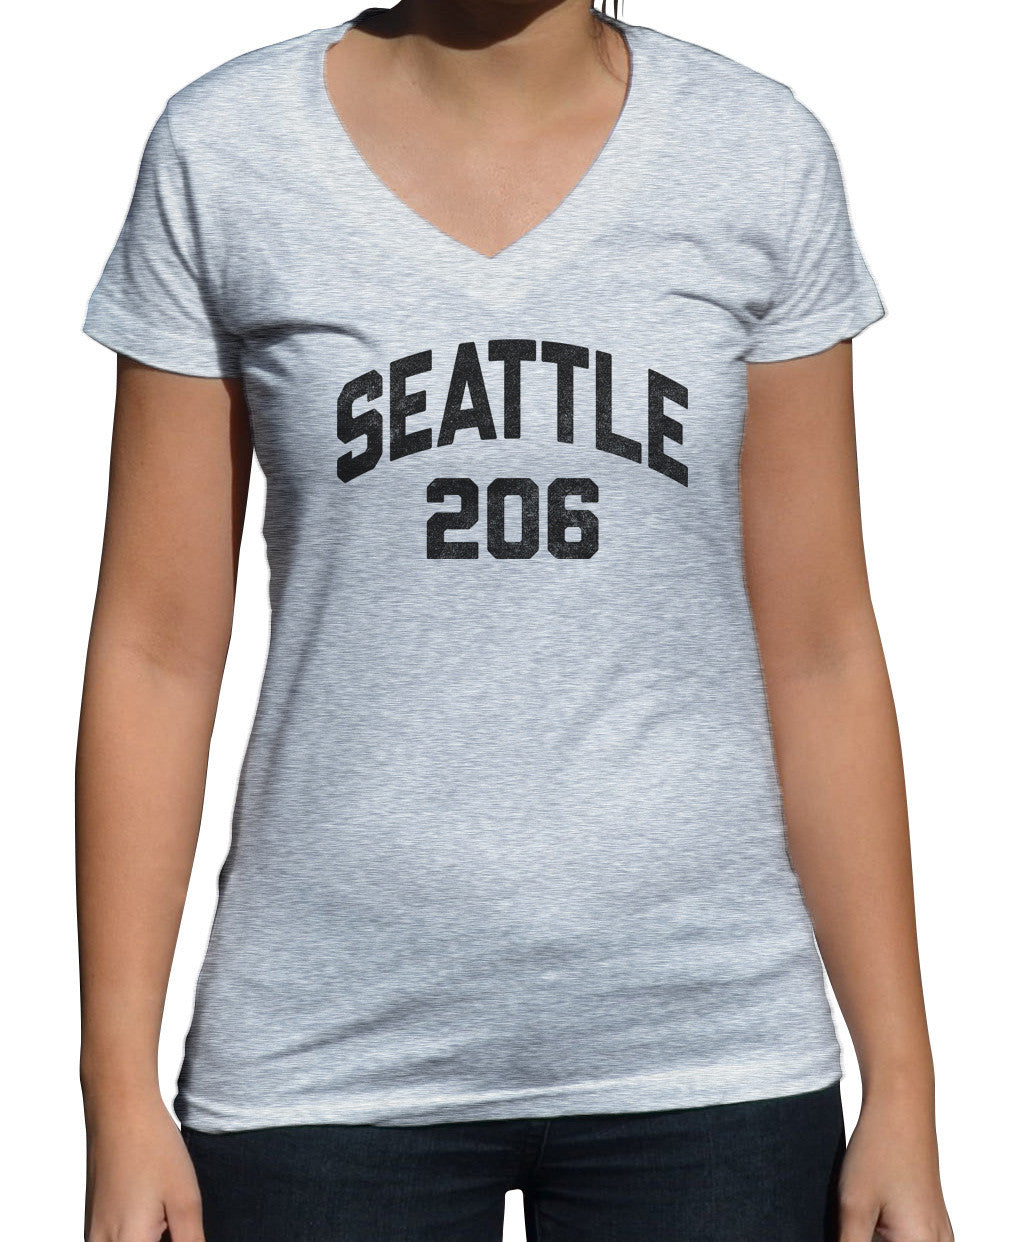 Women's Seattle 206 Area Code Vneck T-Shirt